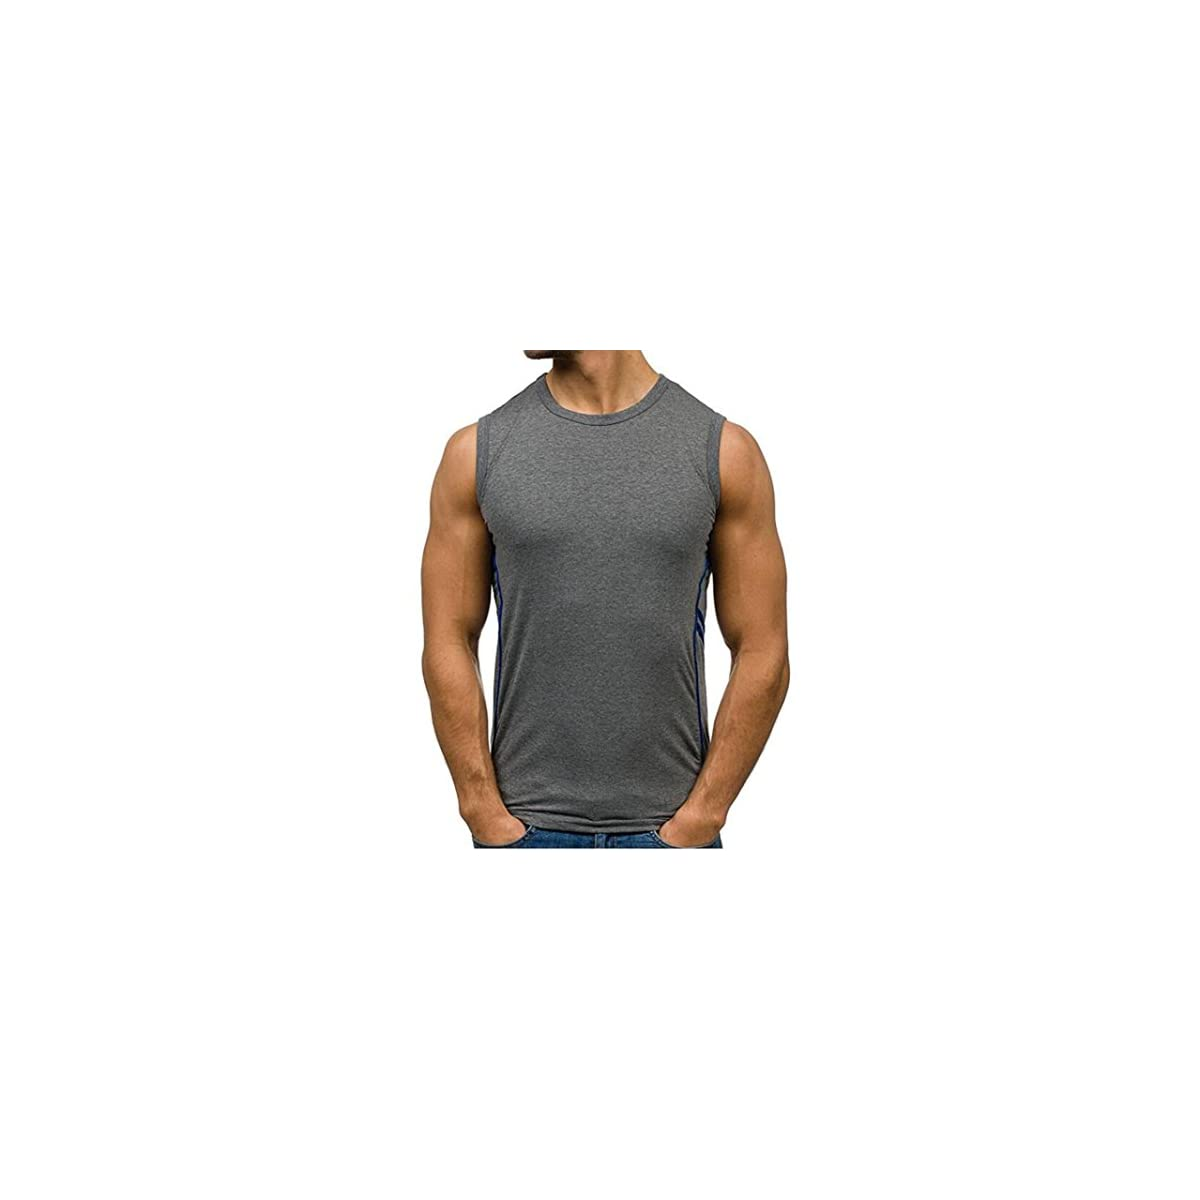 741b37564d7600 Sleeveless Gym T Shirts – EDGE Engineering and Consulting Limited